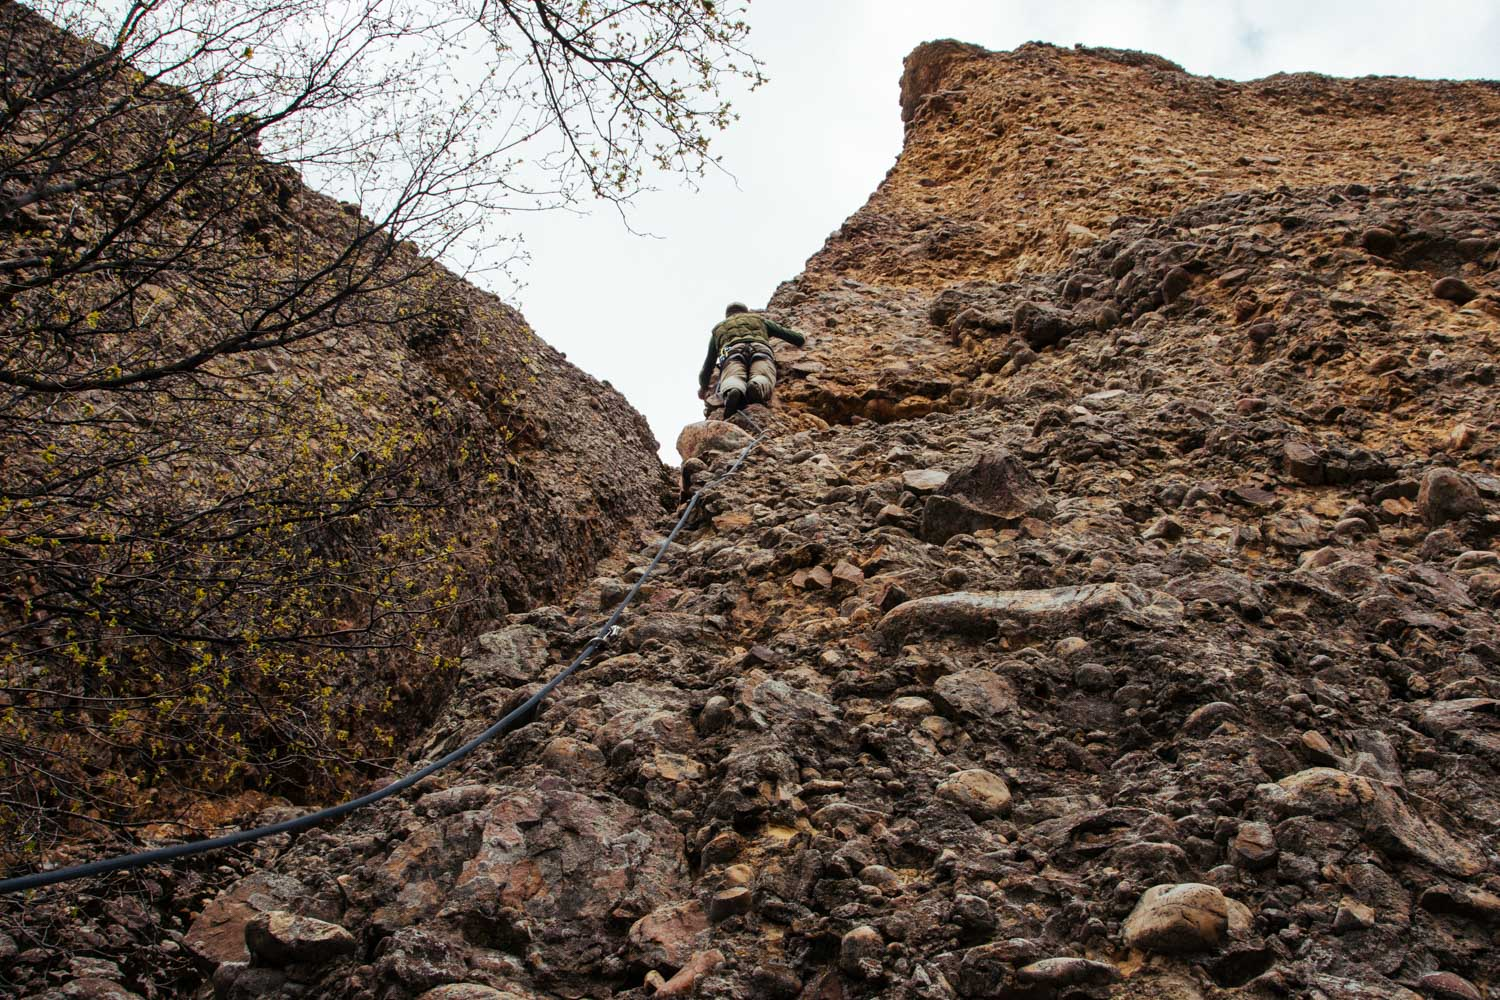 Jerud's first attempt to lead, Bullets of Baghdad, 5.7.